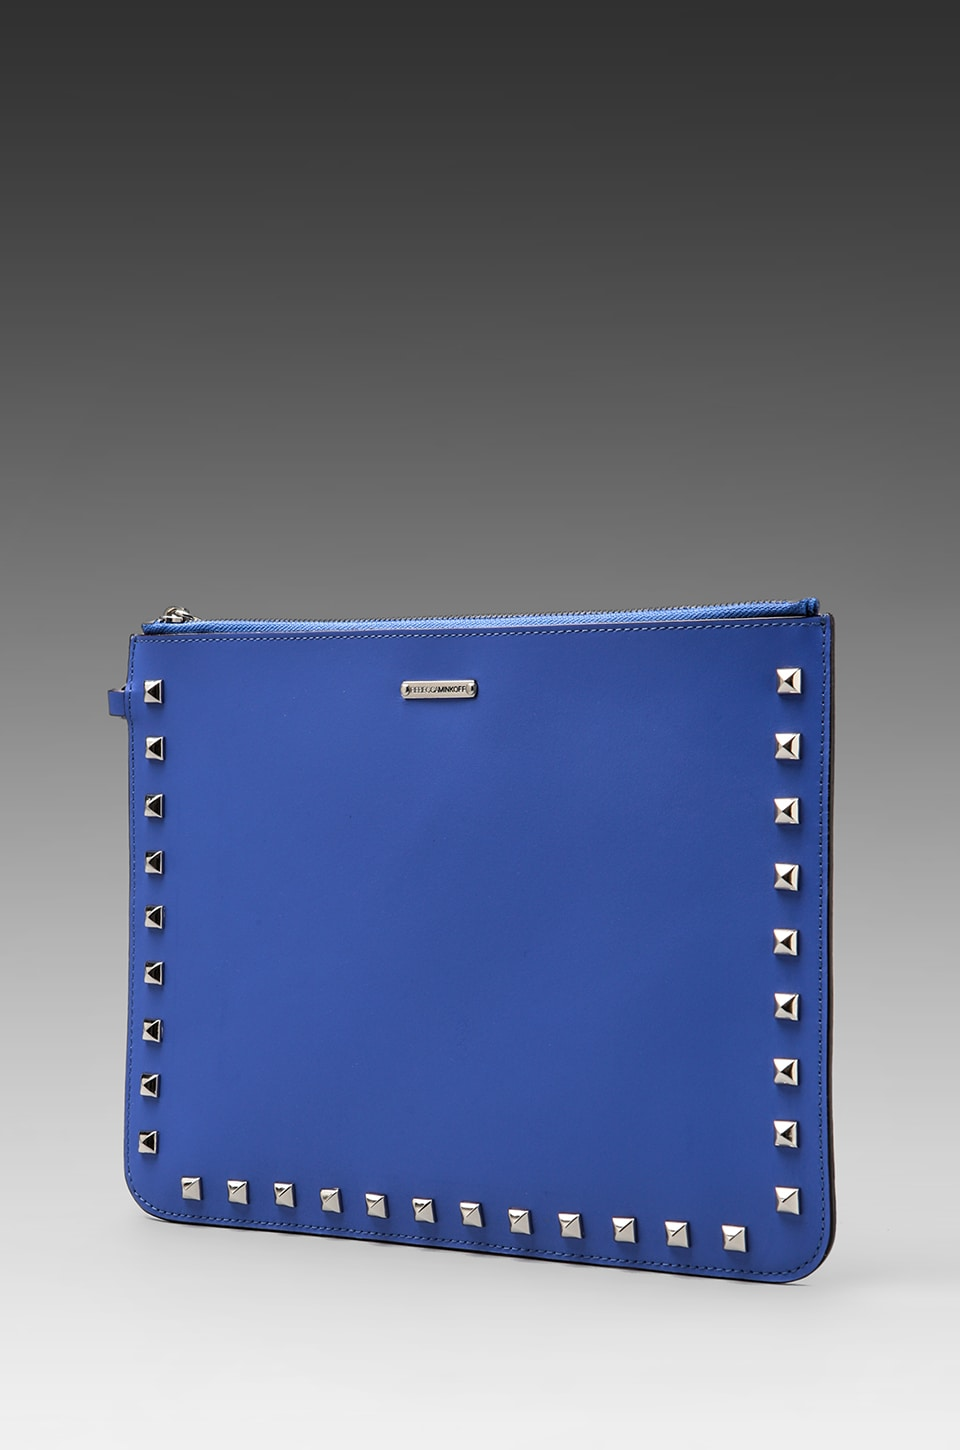 Rebecca Minkoff Lissa Pouch with Studs in Periwinkle/Petal Pink